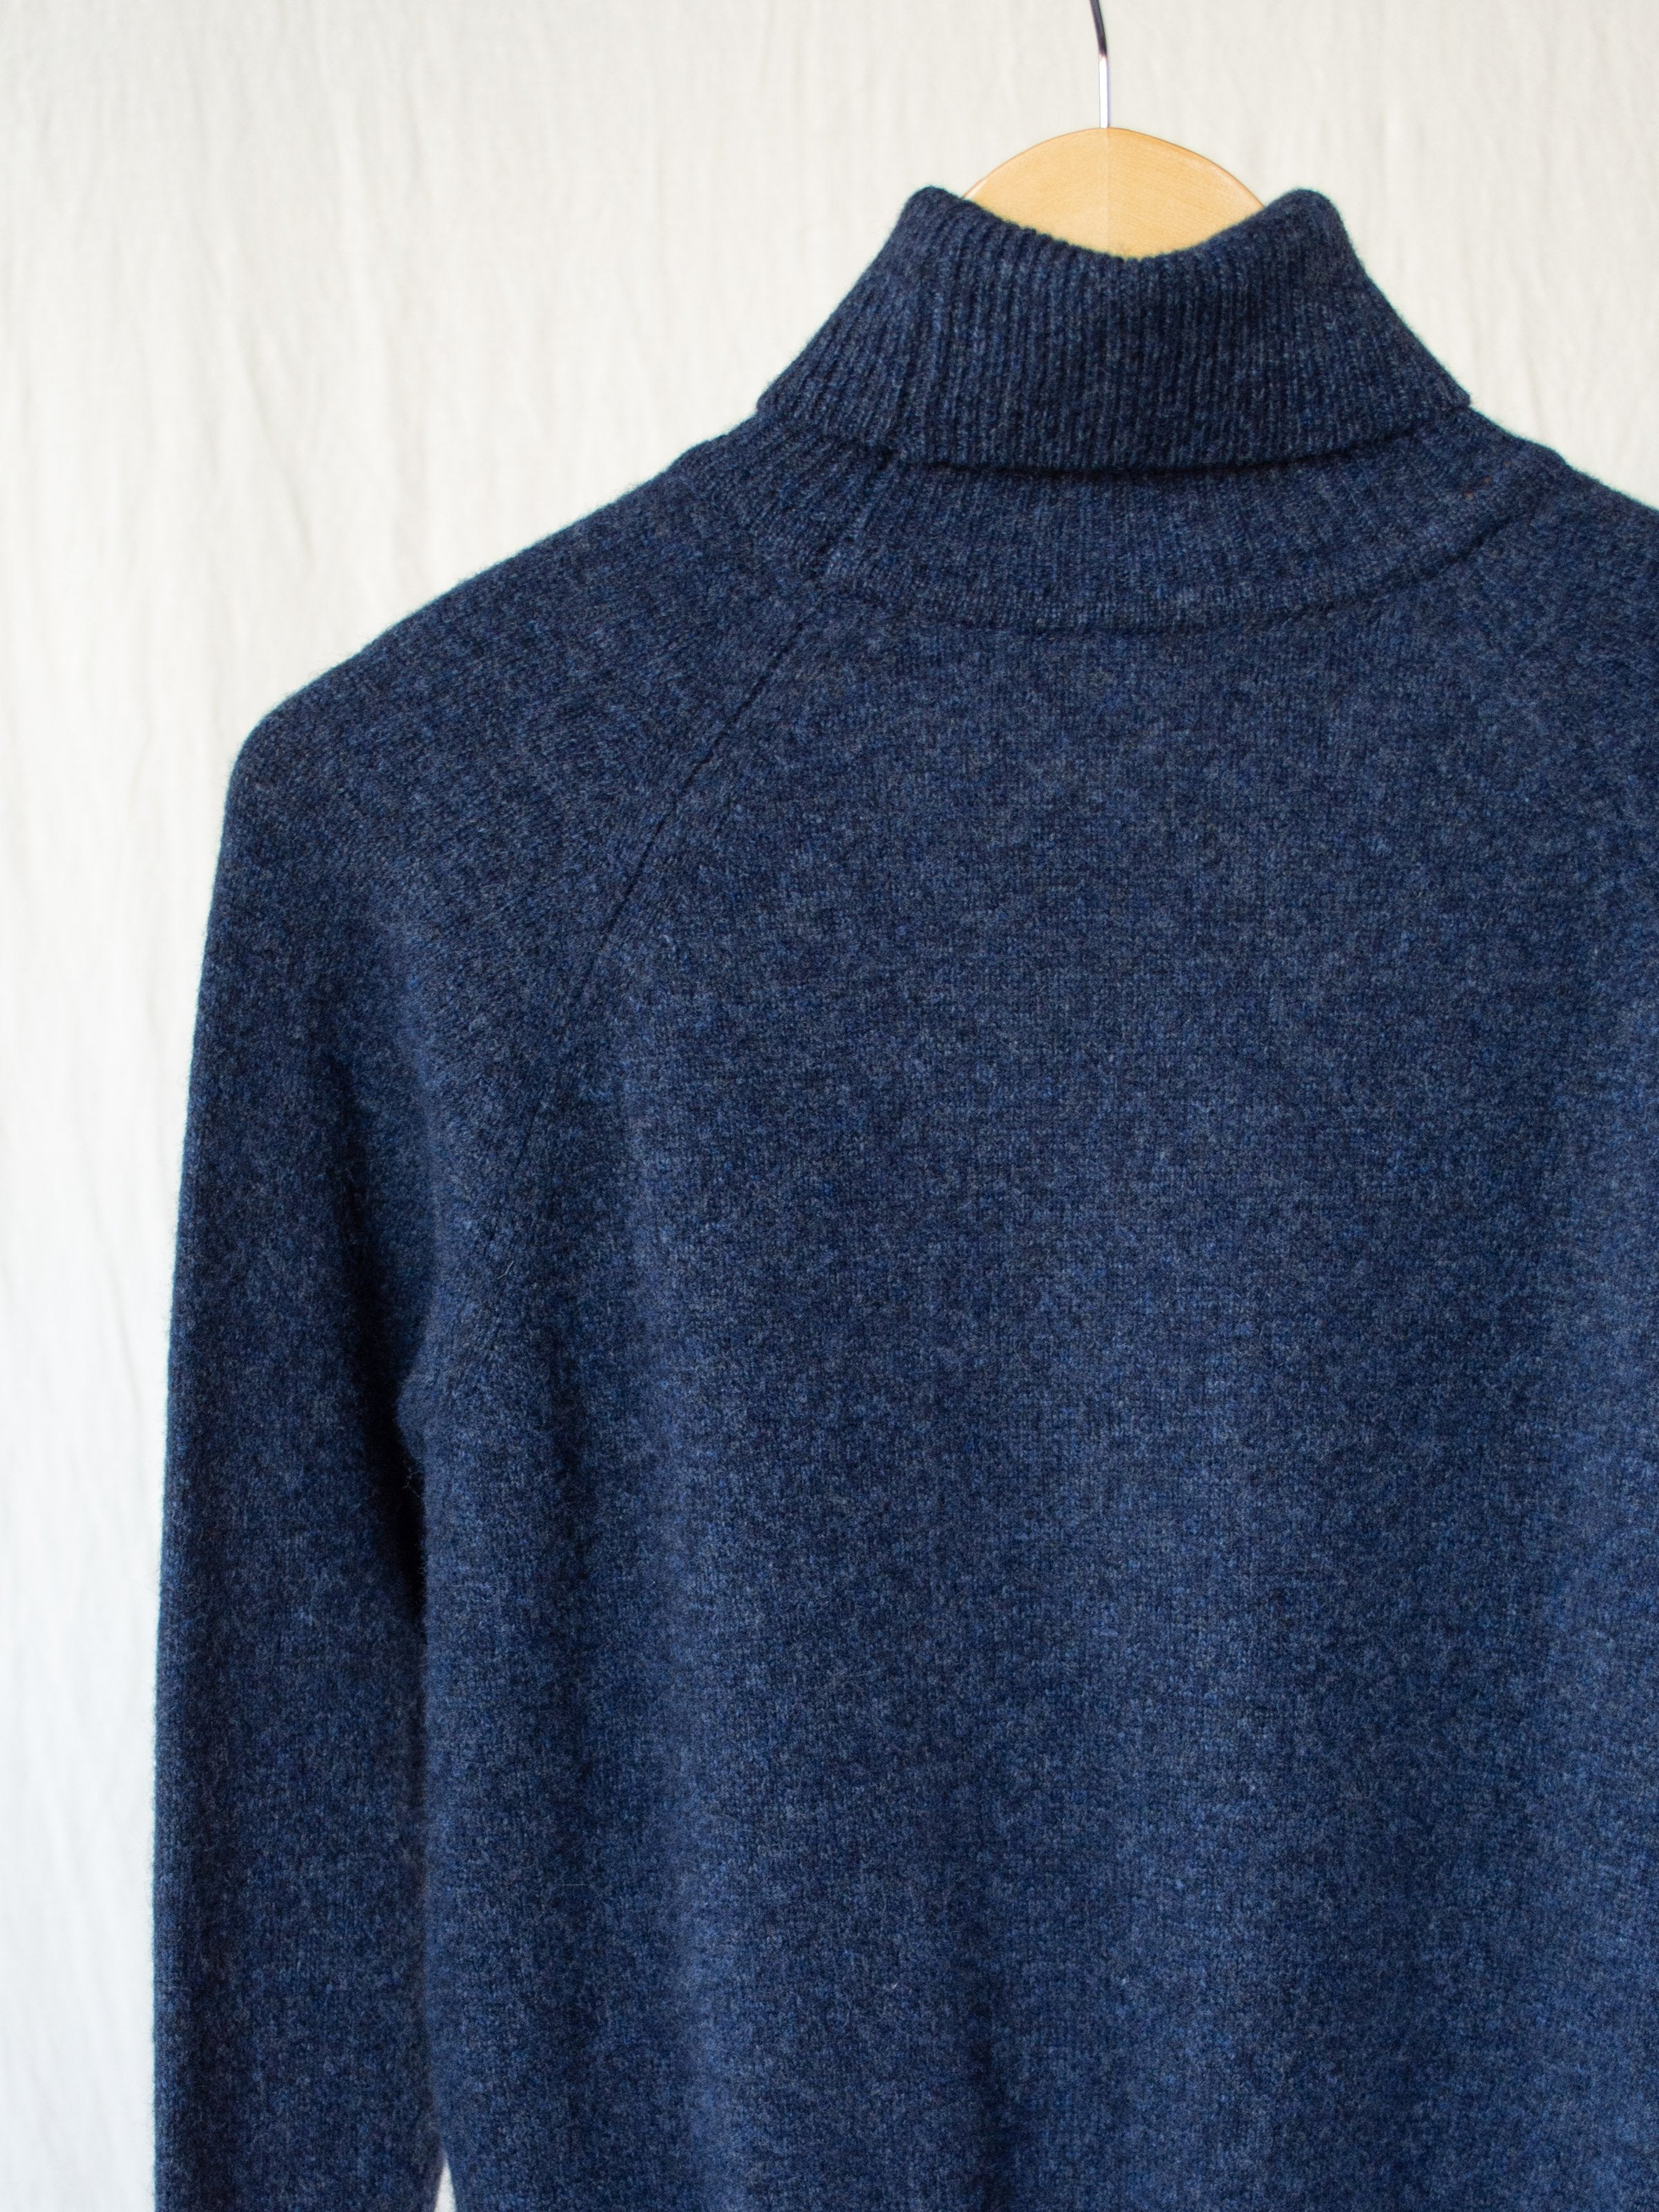 Namu Shop - Phlannel Wool Cashmere Turtleneck - Indigo